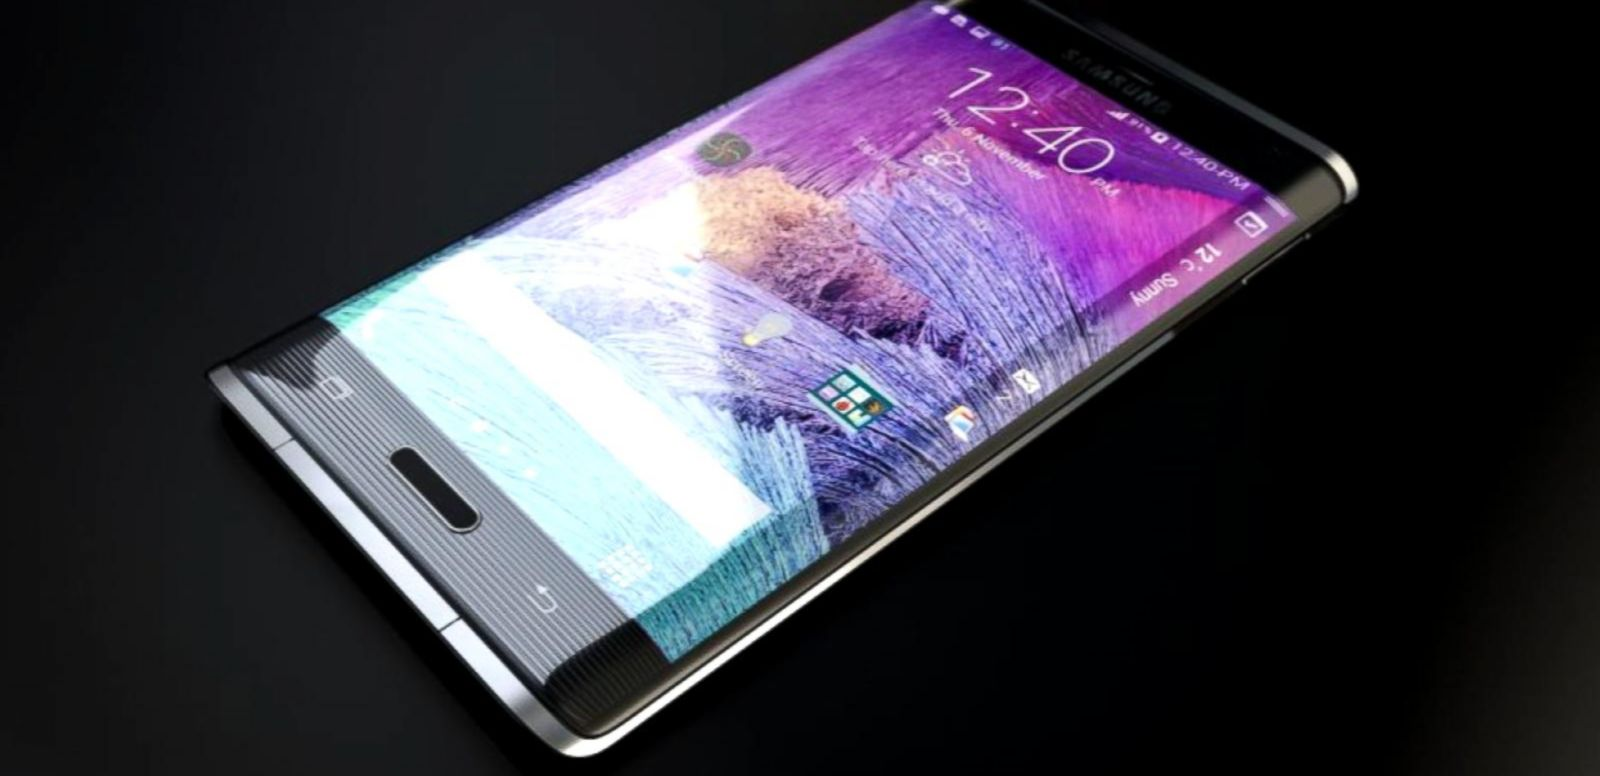 VIDEO: The company released two new phone models with a curved glass display and the ability to charge wirelessly.